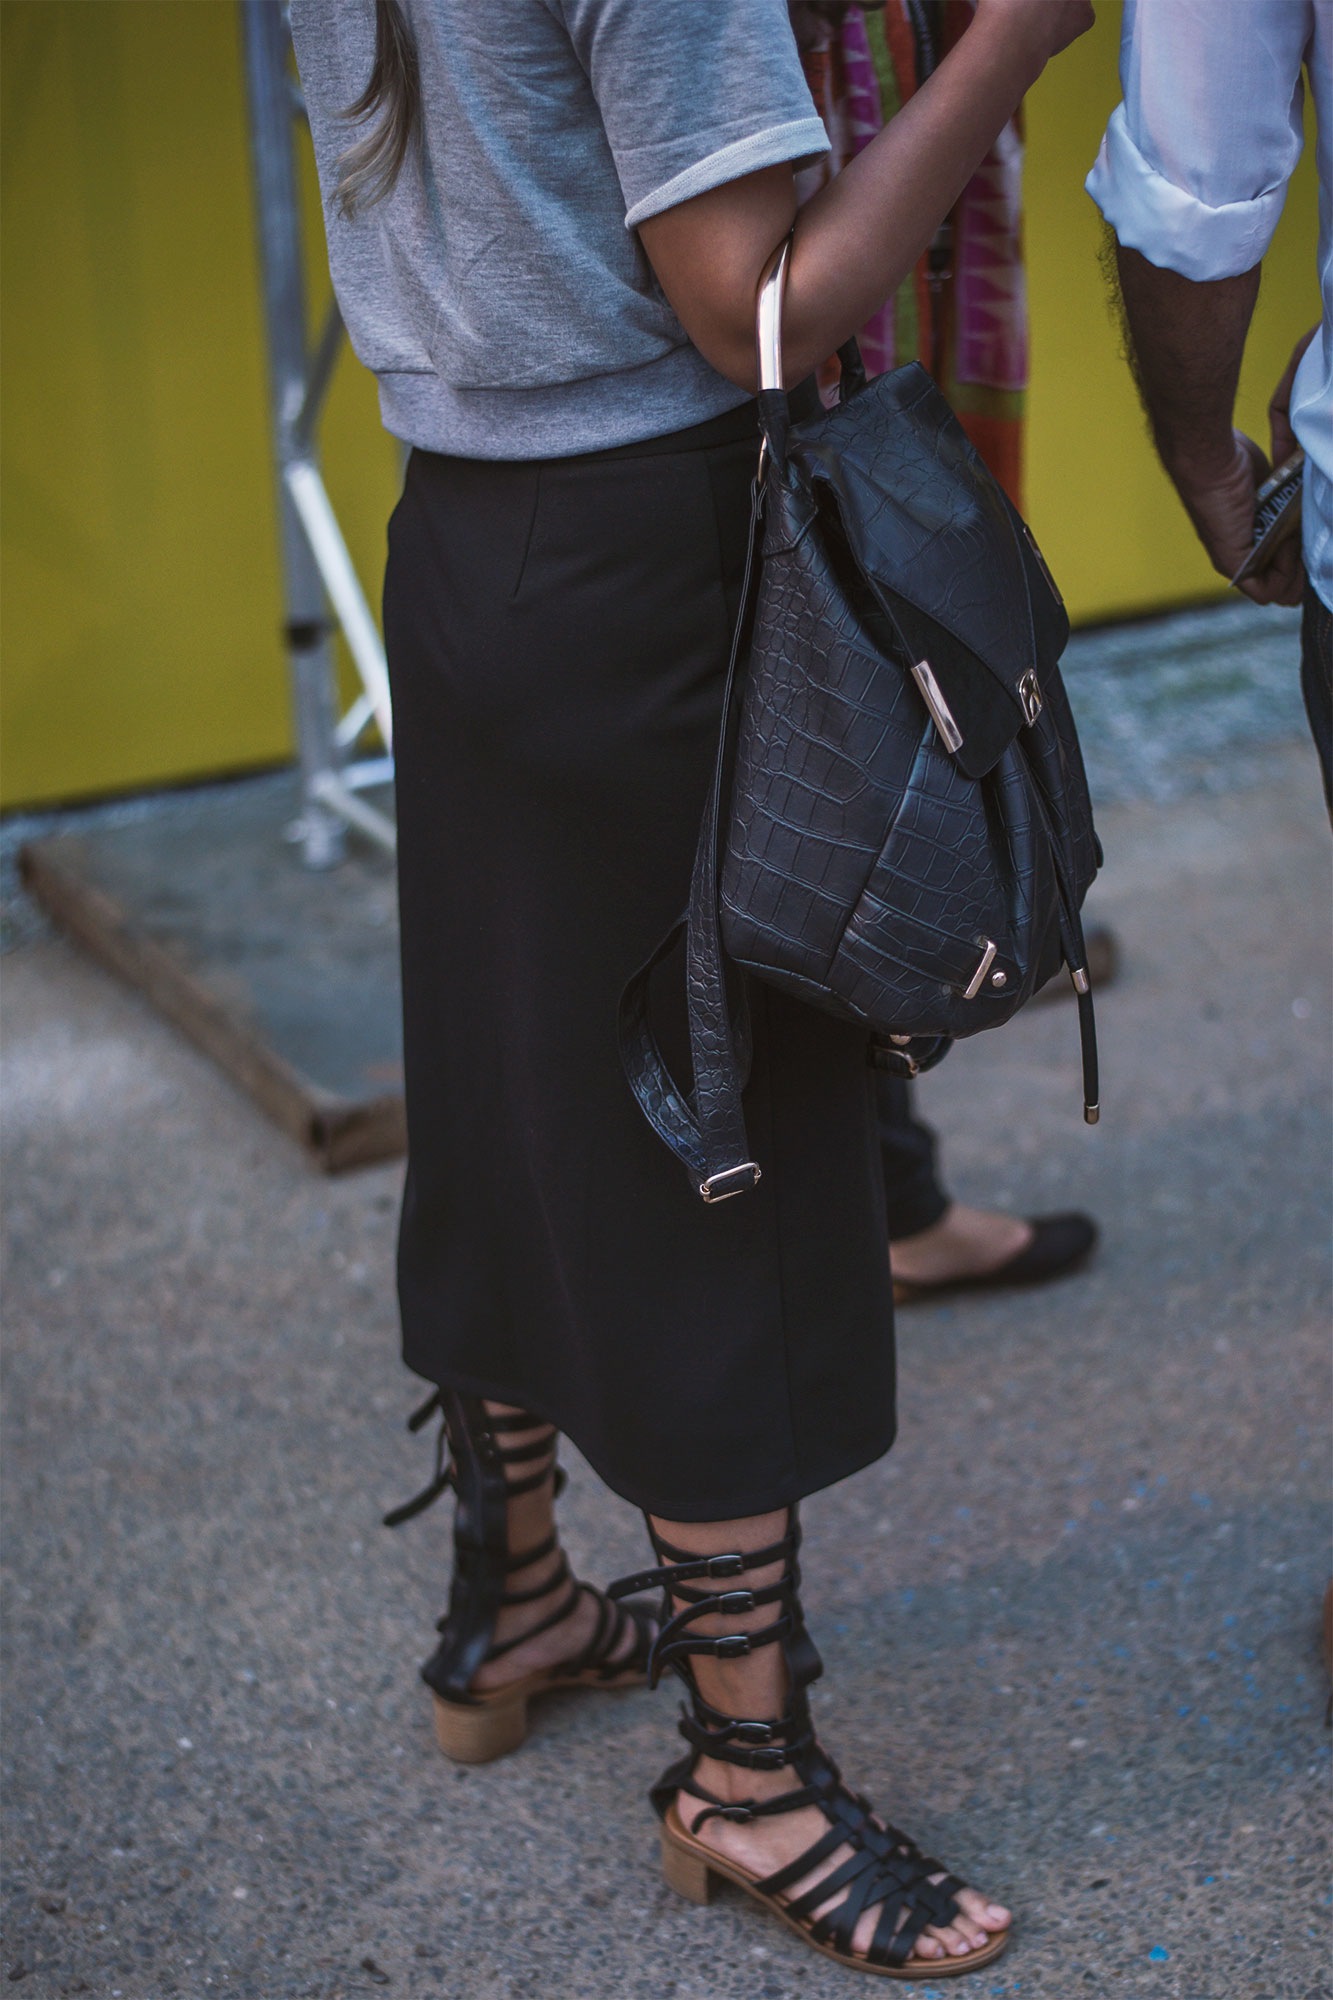 AIFW AW16 STREET STYLE DETAILS Photo by Rawky Ksh 14